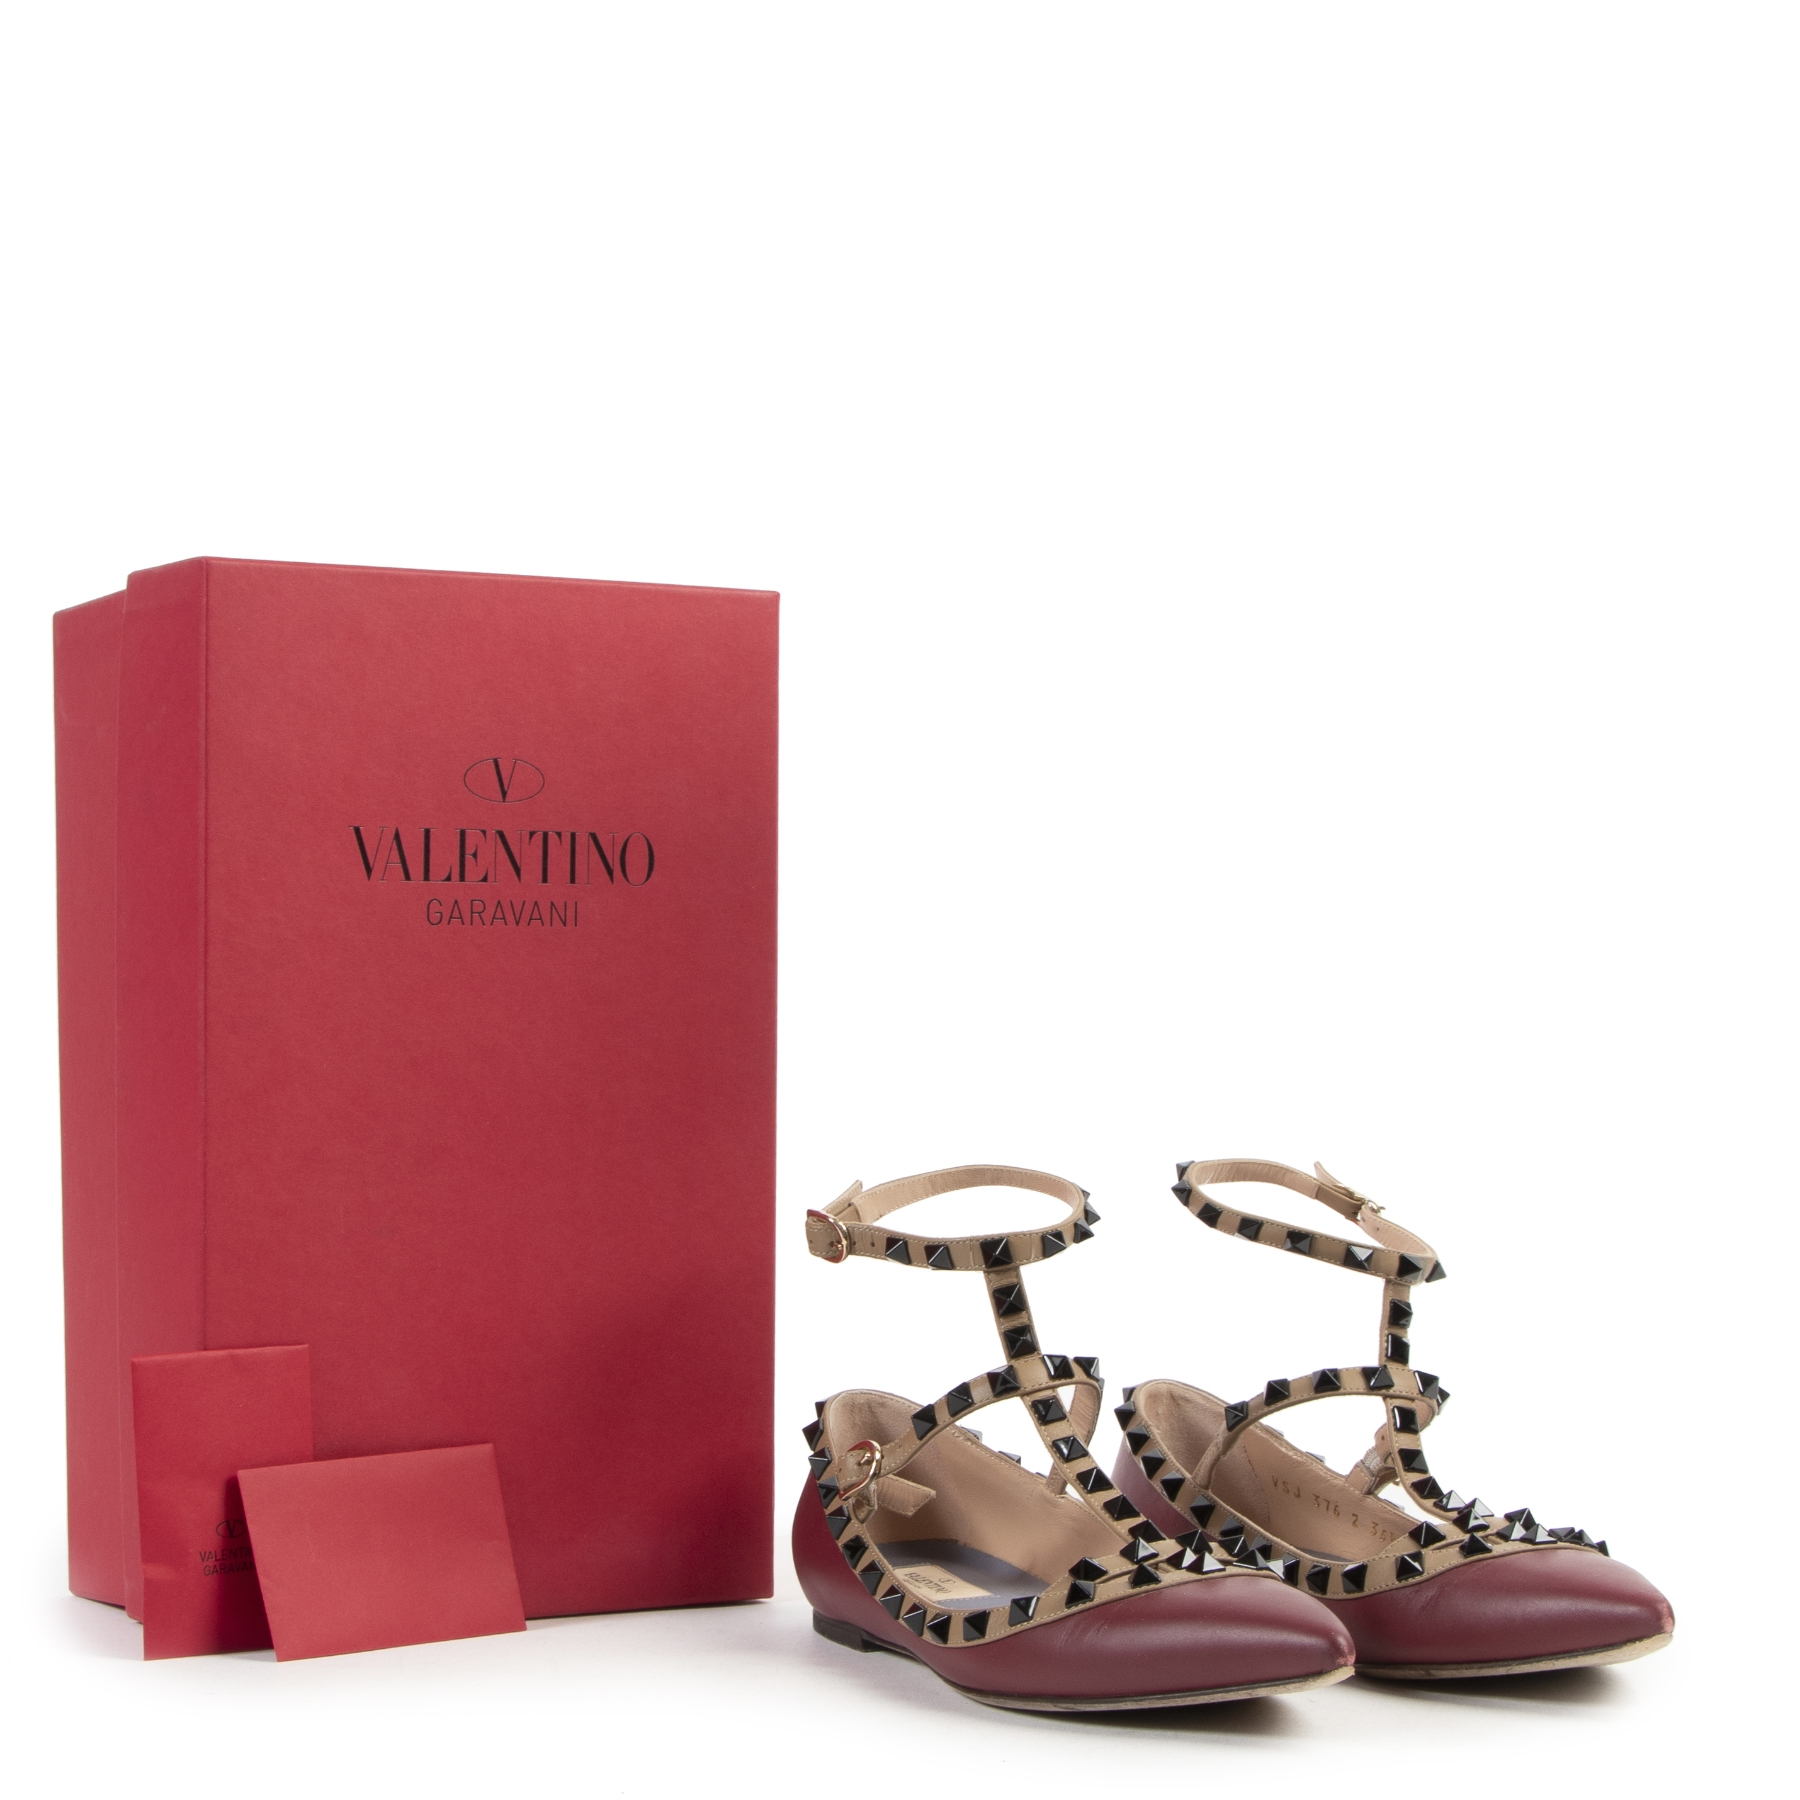 Valentino Garavani Rockstud Leather Ballerinas for the best price at Labellov secondhand luxury webshop in Antwerp